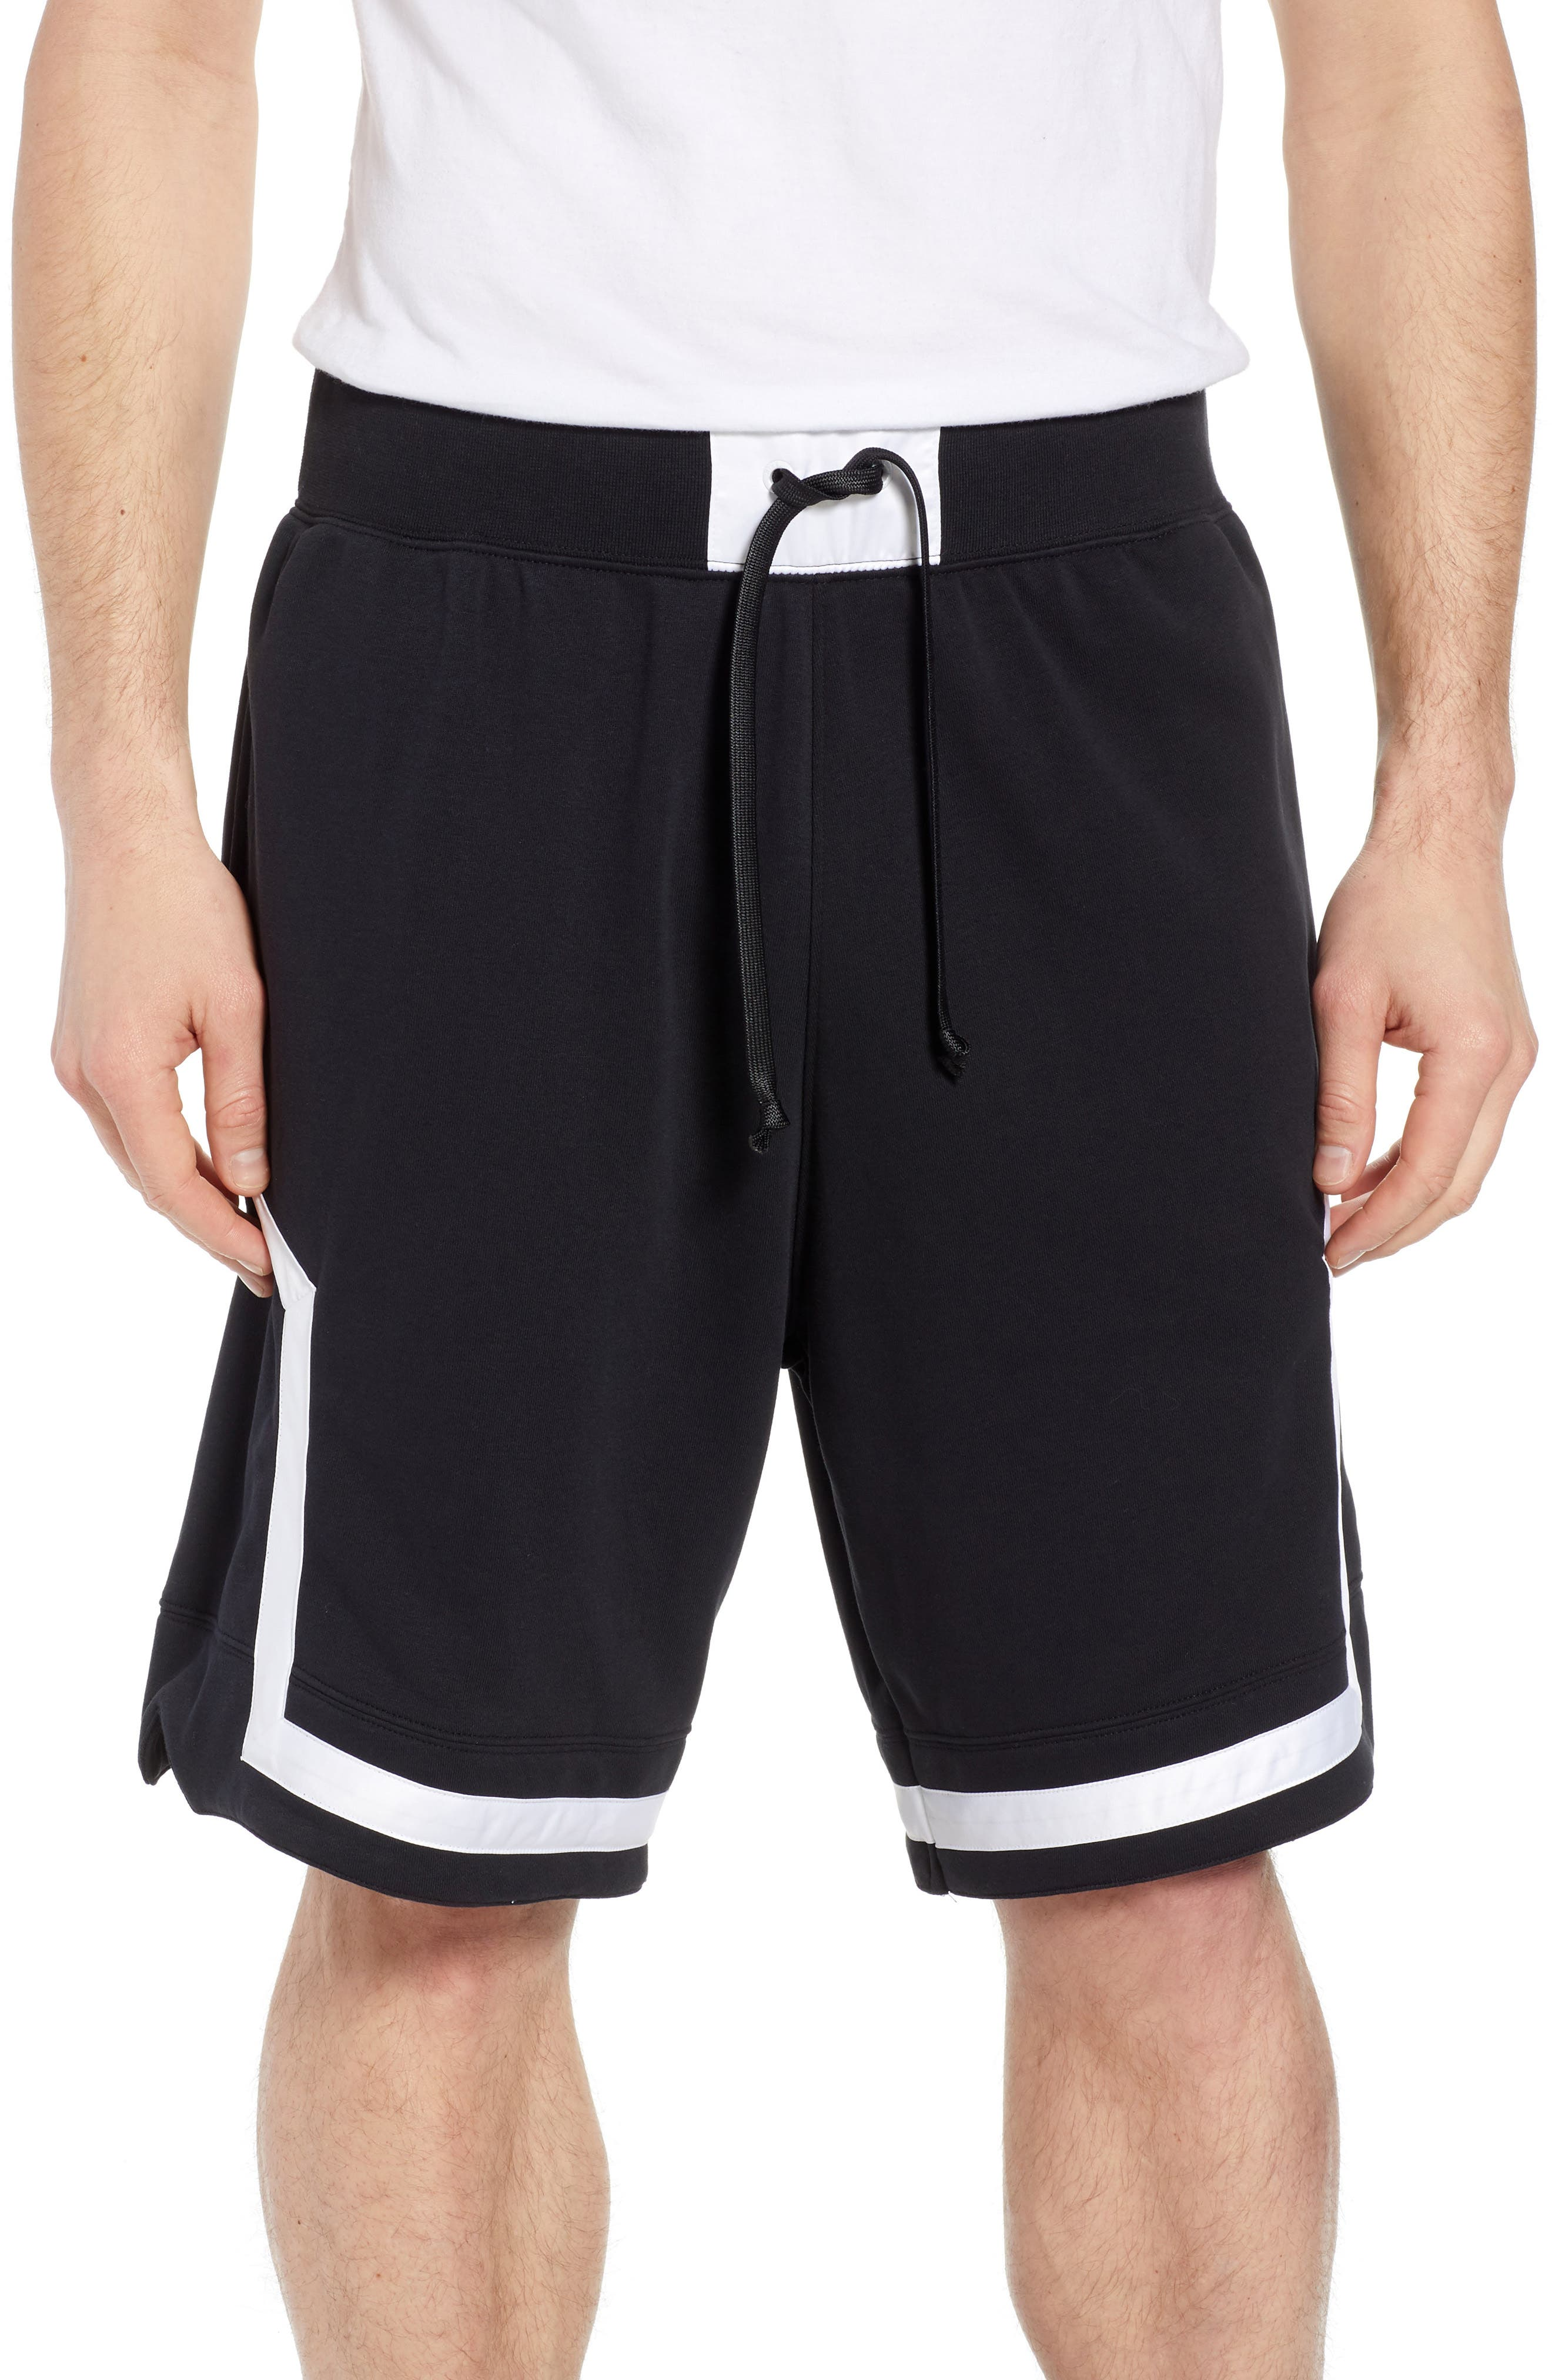 Air Force One Shorts,                         Main,                         color, BLACK/ WHITE